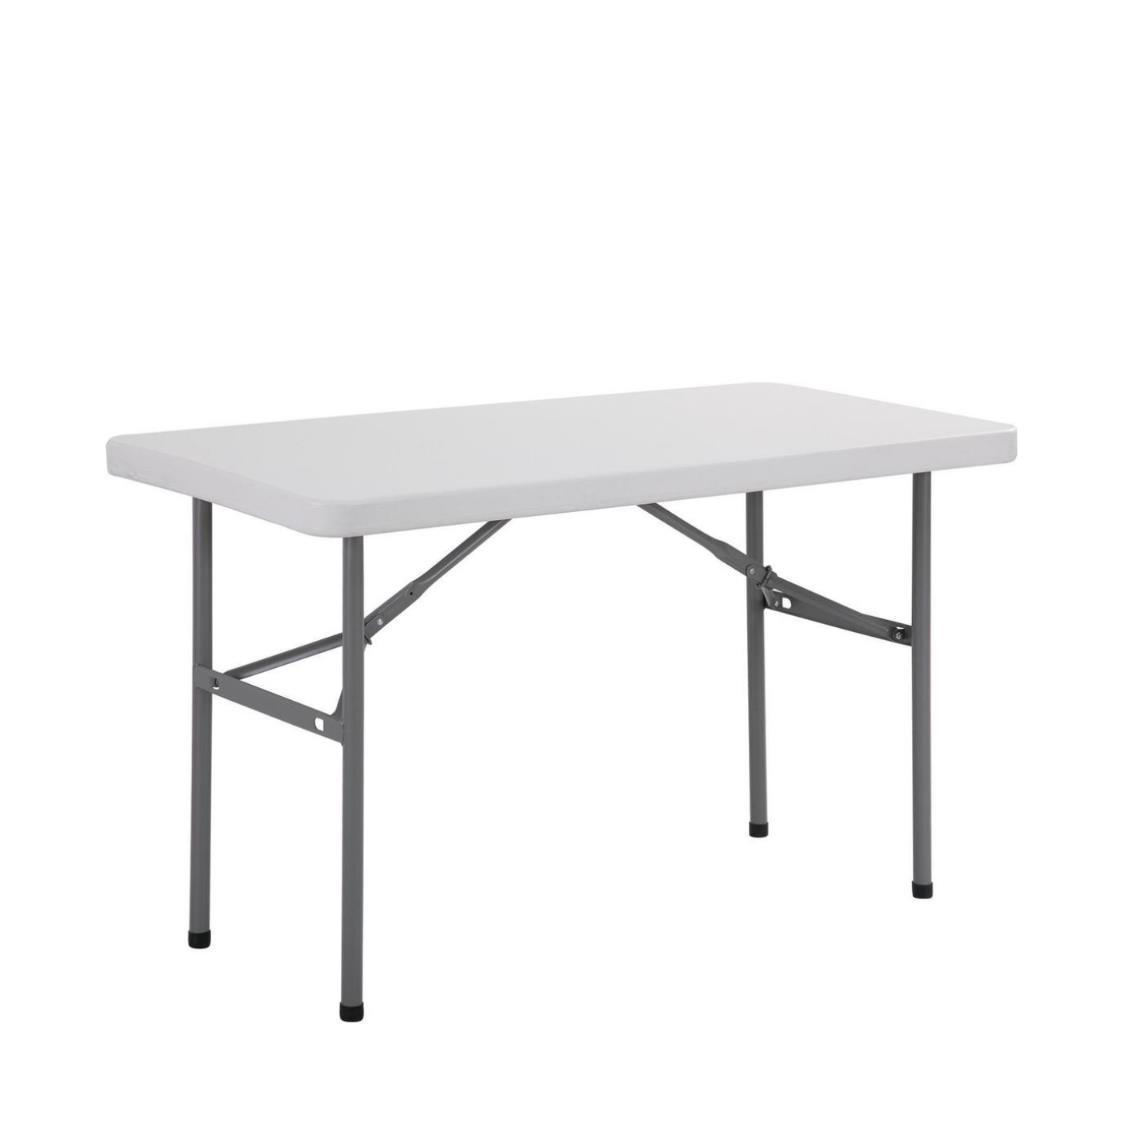 4ft Rectangle Table with HDPE Table Top and Powder-coated Steel Frame